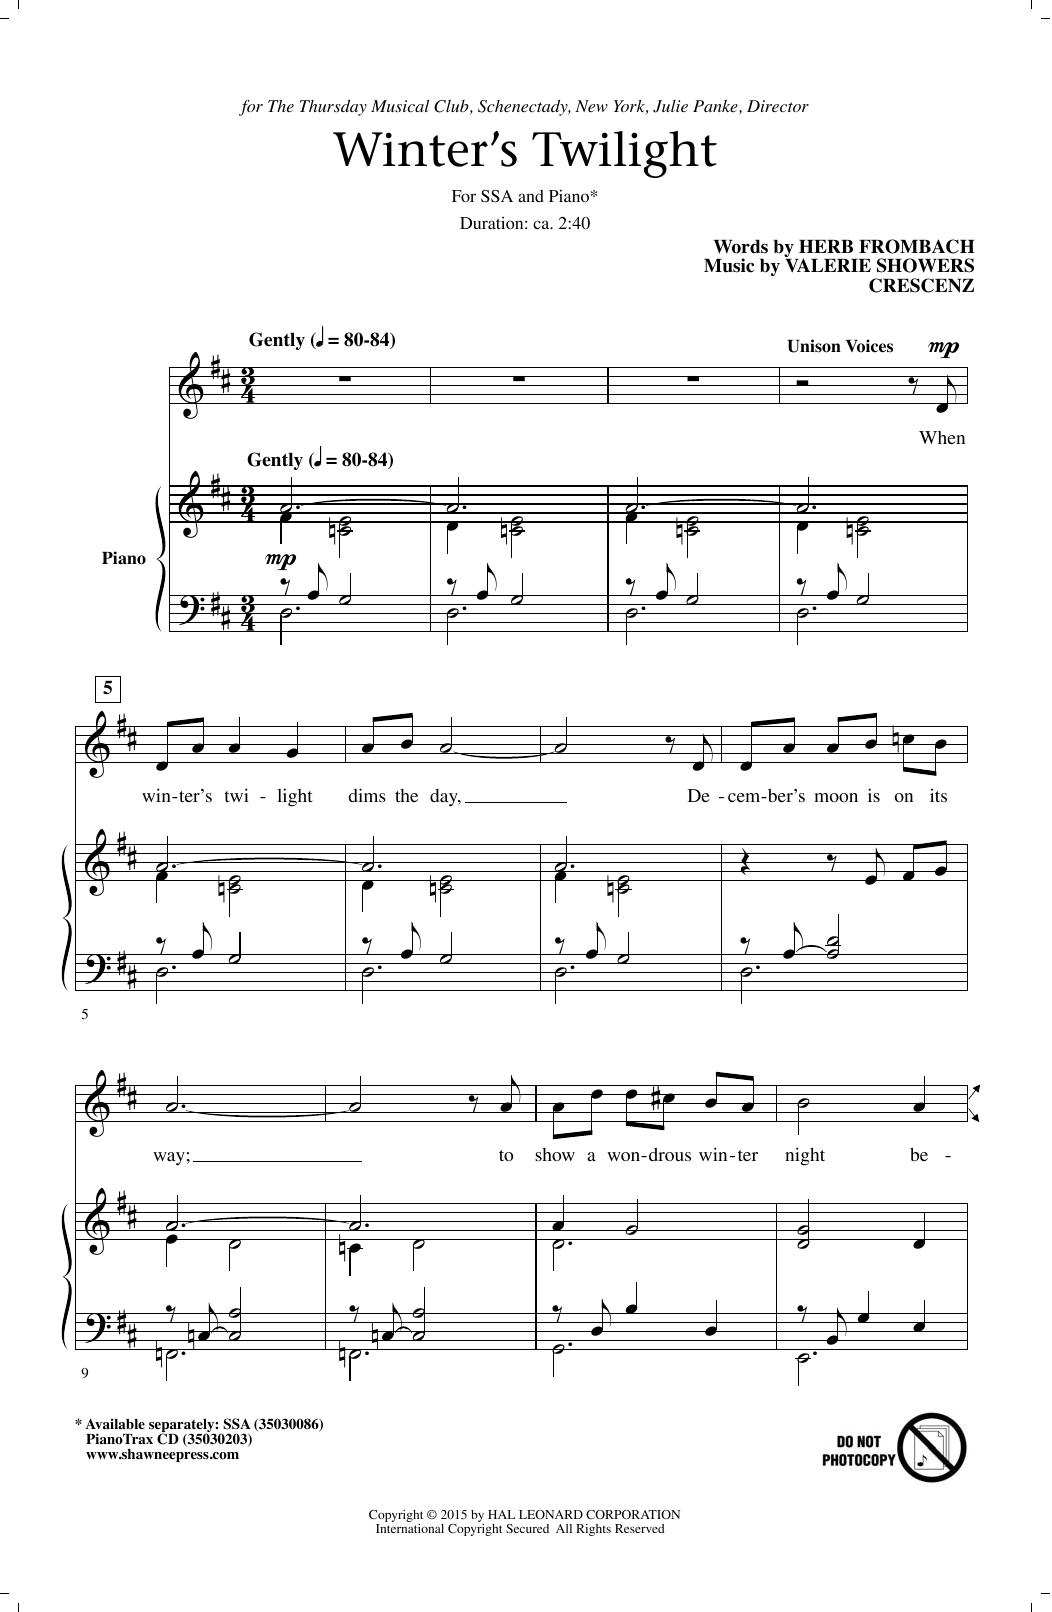 Winter's Twilight Sheet Music